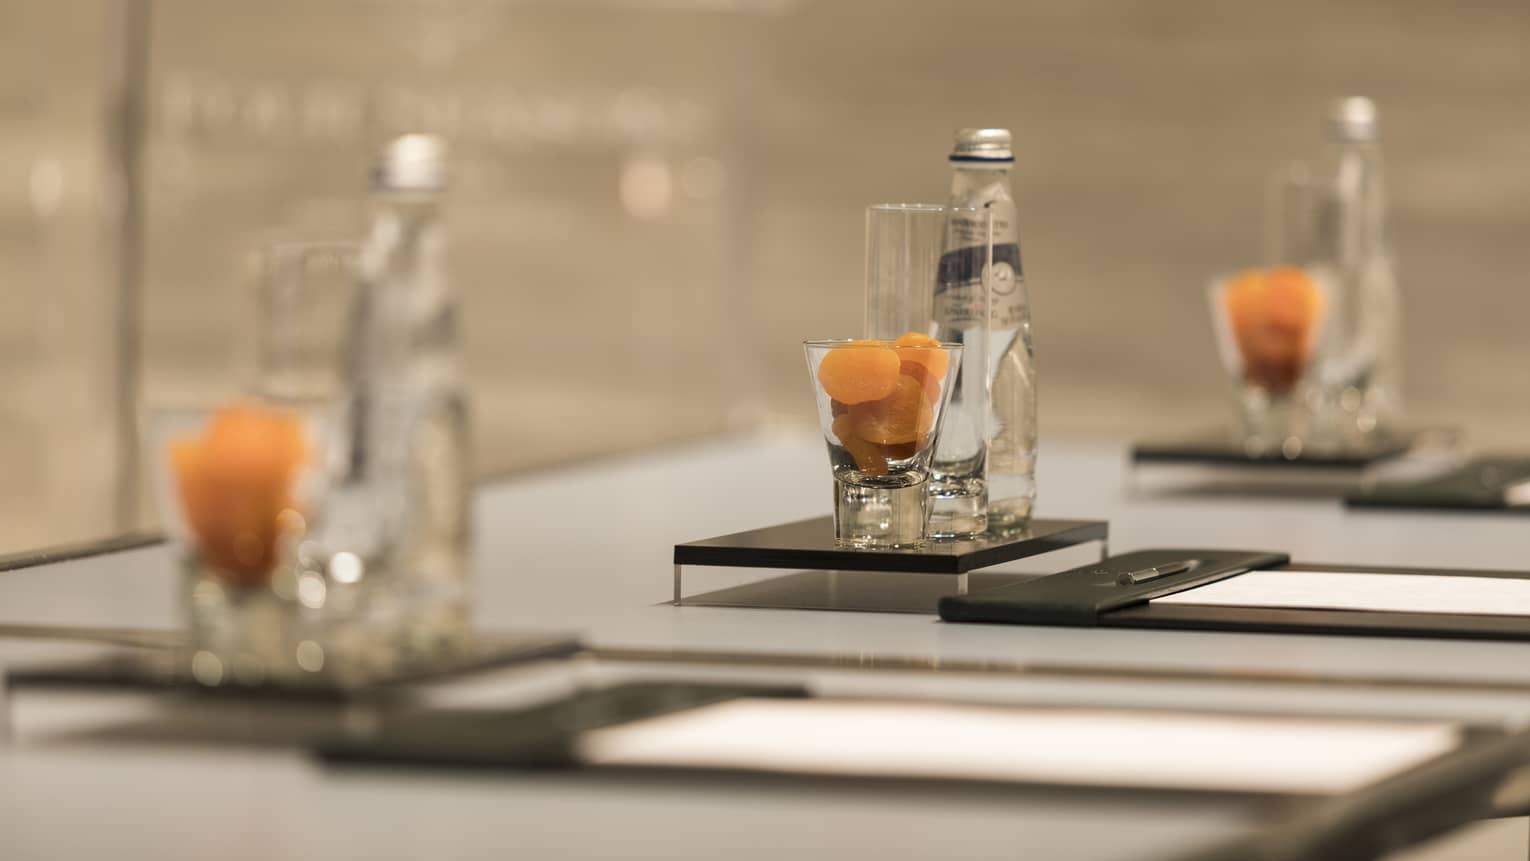 Close-up of meeting table place setting with agenda, dried apricots in glass, bottle of sparkling water